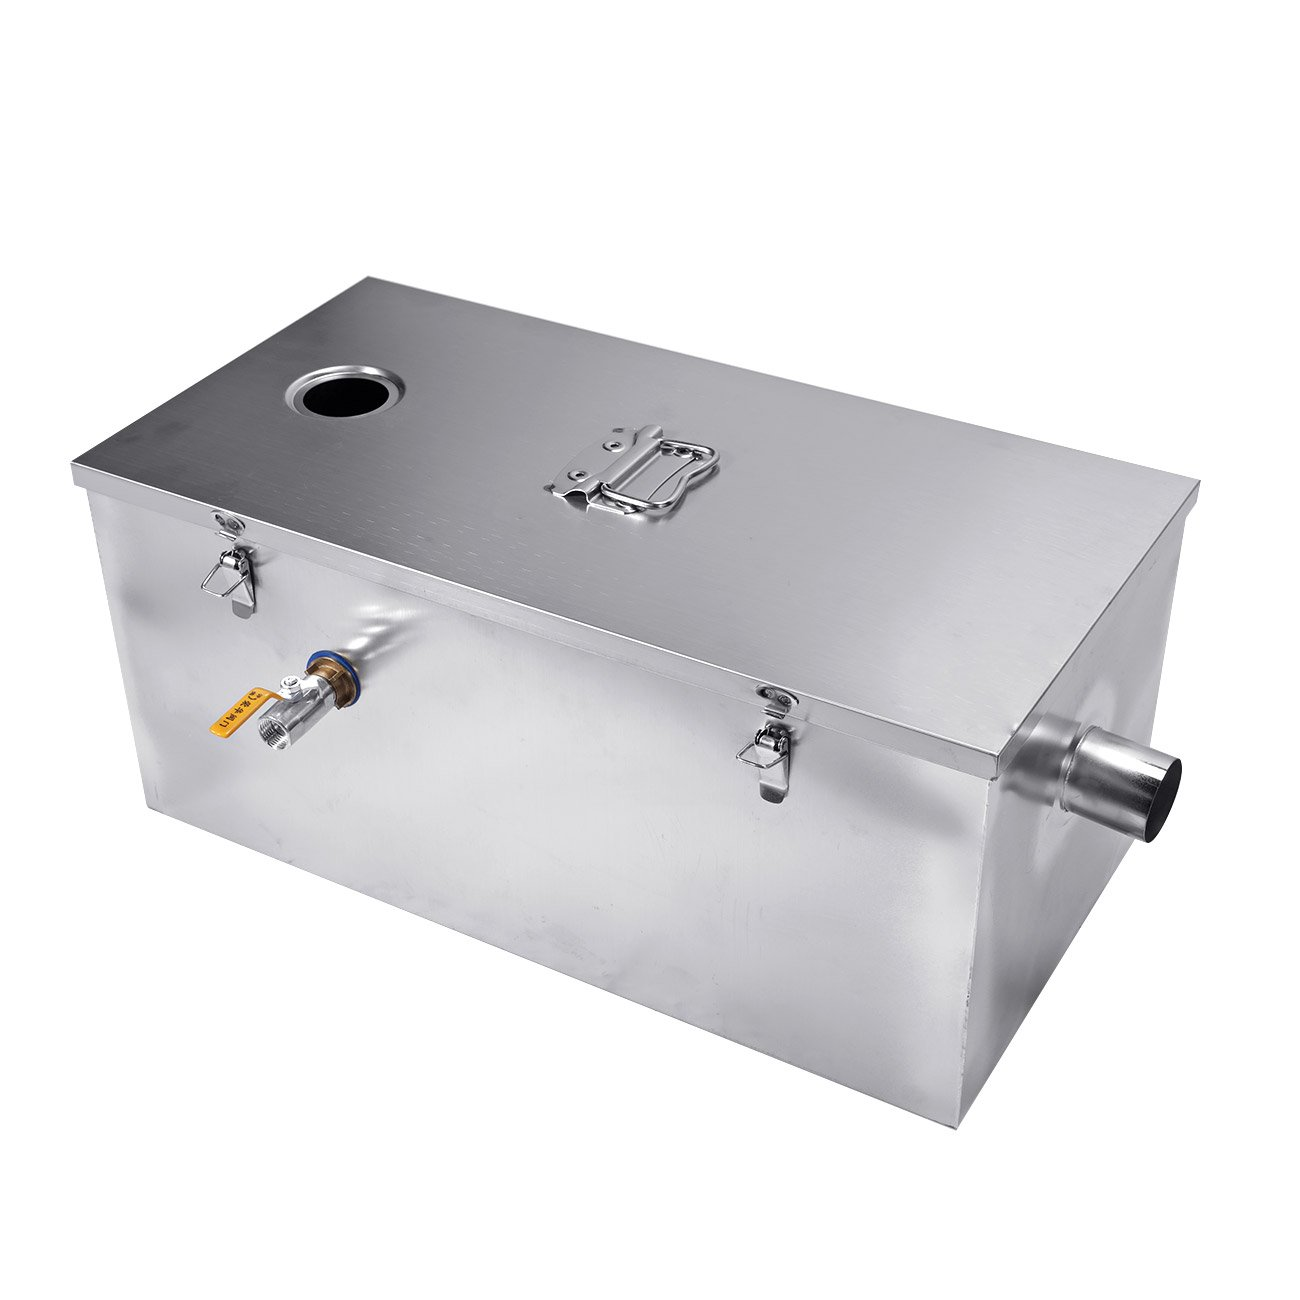 BEAMNOVA Commercial 25LB Grease Trap for Restaurants 13GPM Gallons Per Minute Stainless Steel kitchen Interceptor